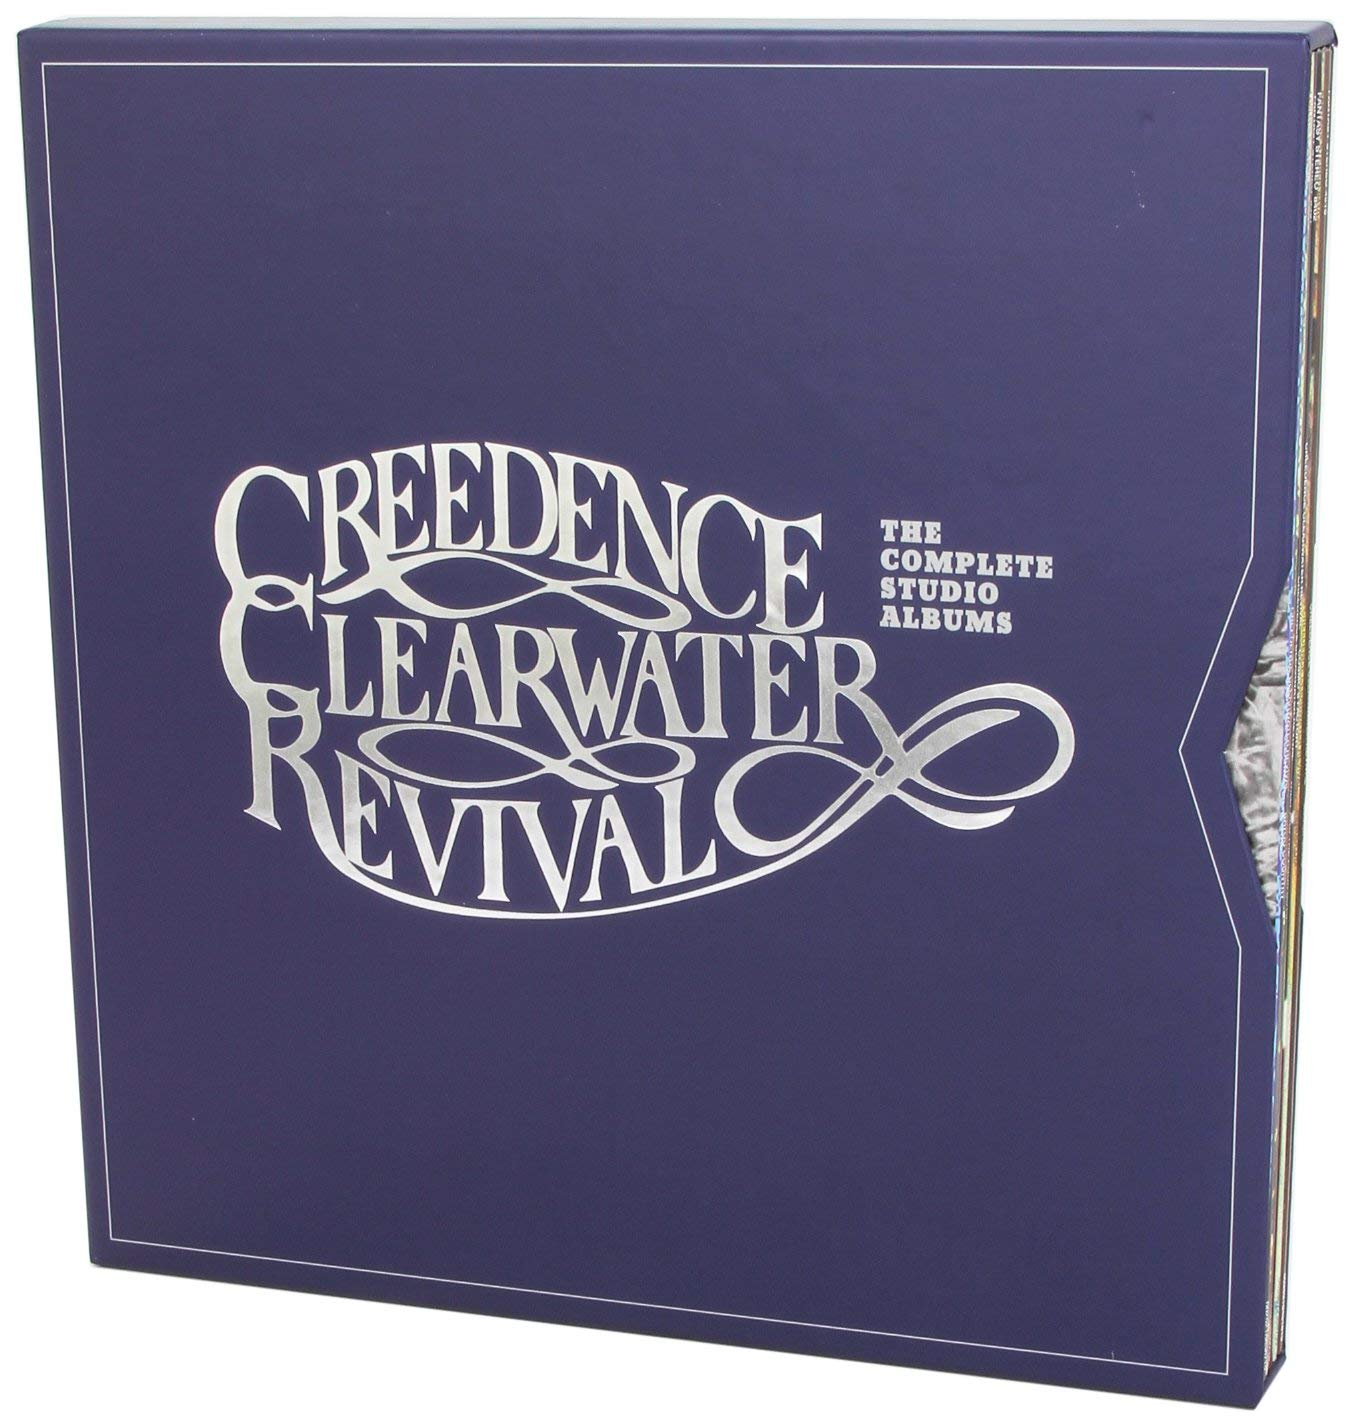 Creedence Clearwater Revival - The Complete Studio Albums Set [Limited Edition LP Box Set]